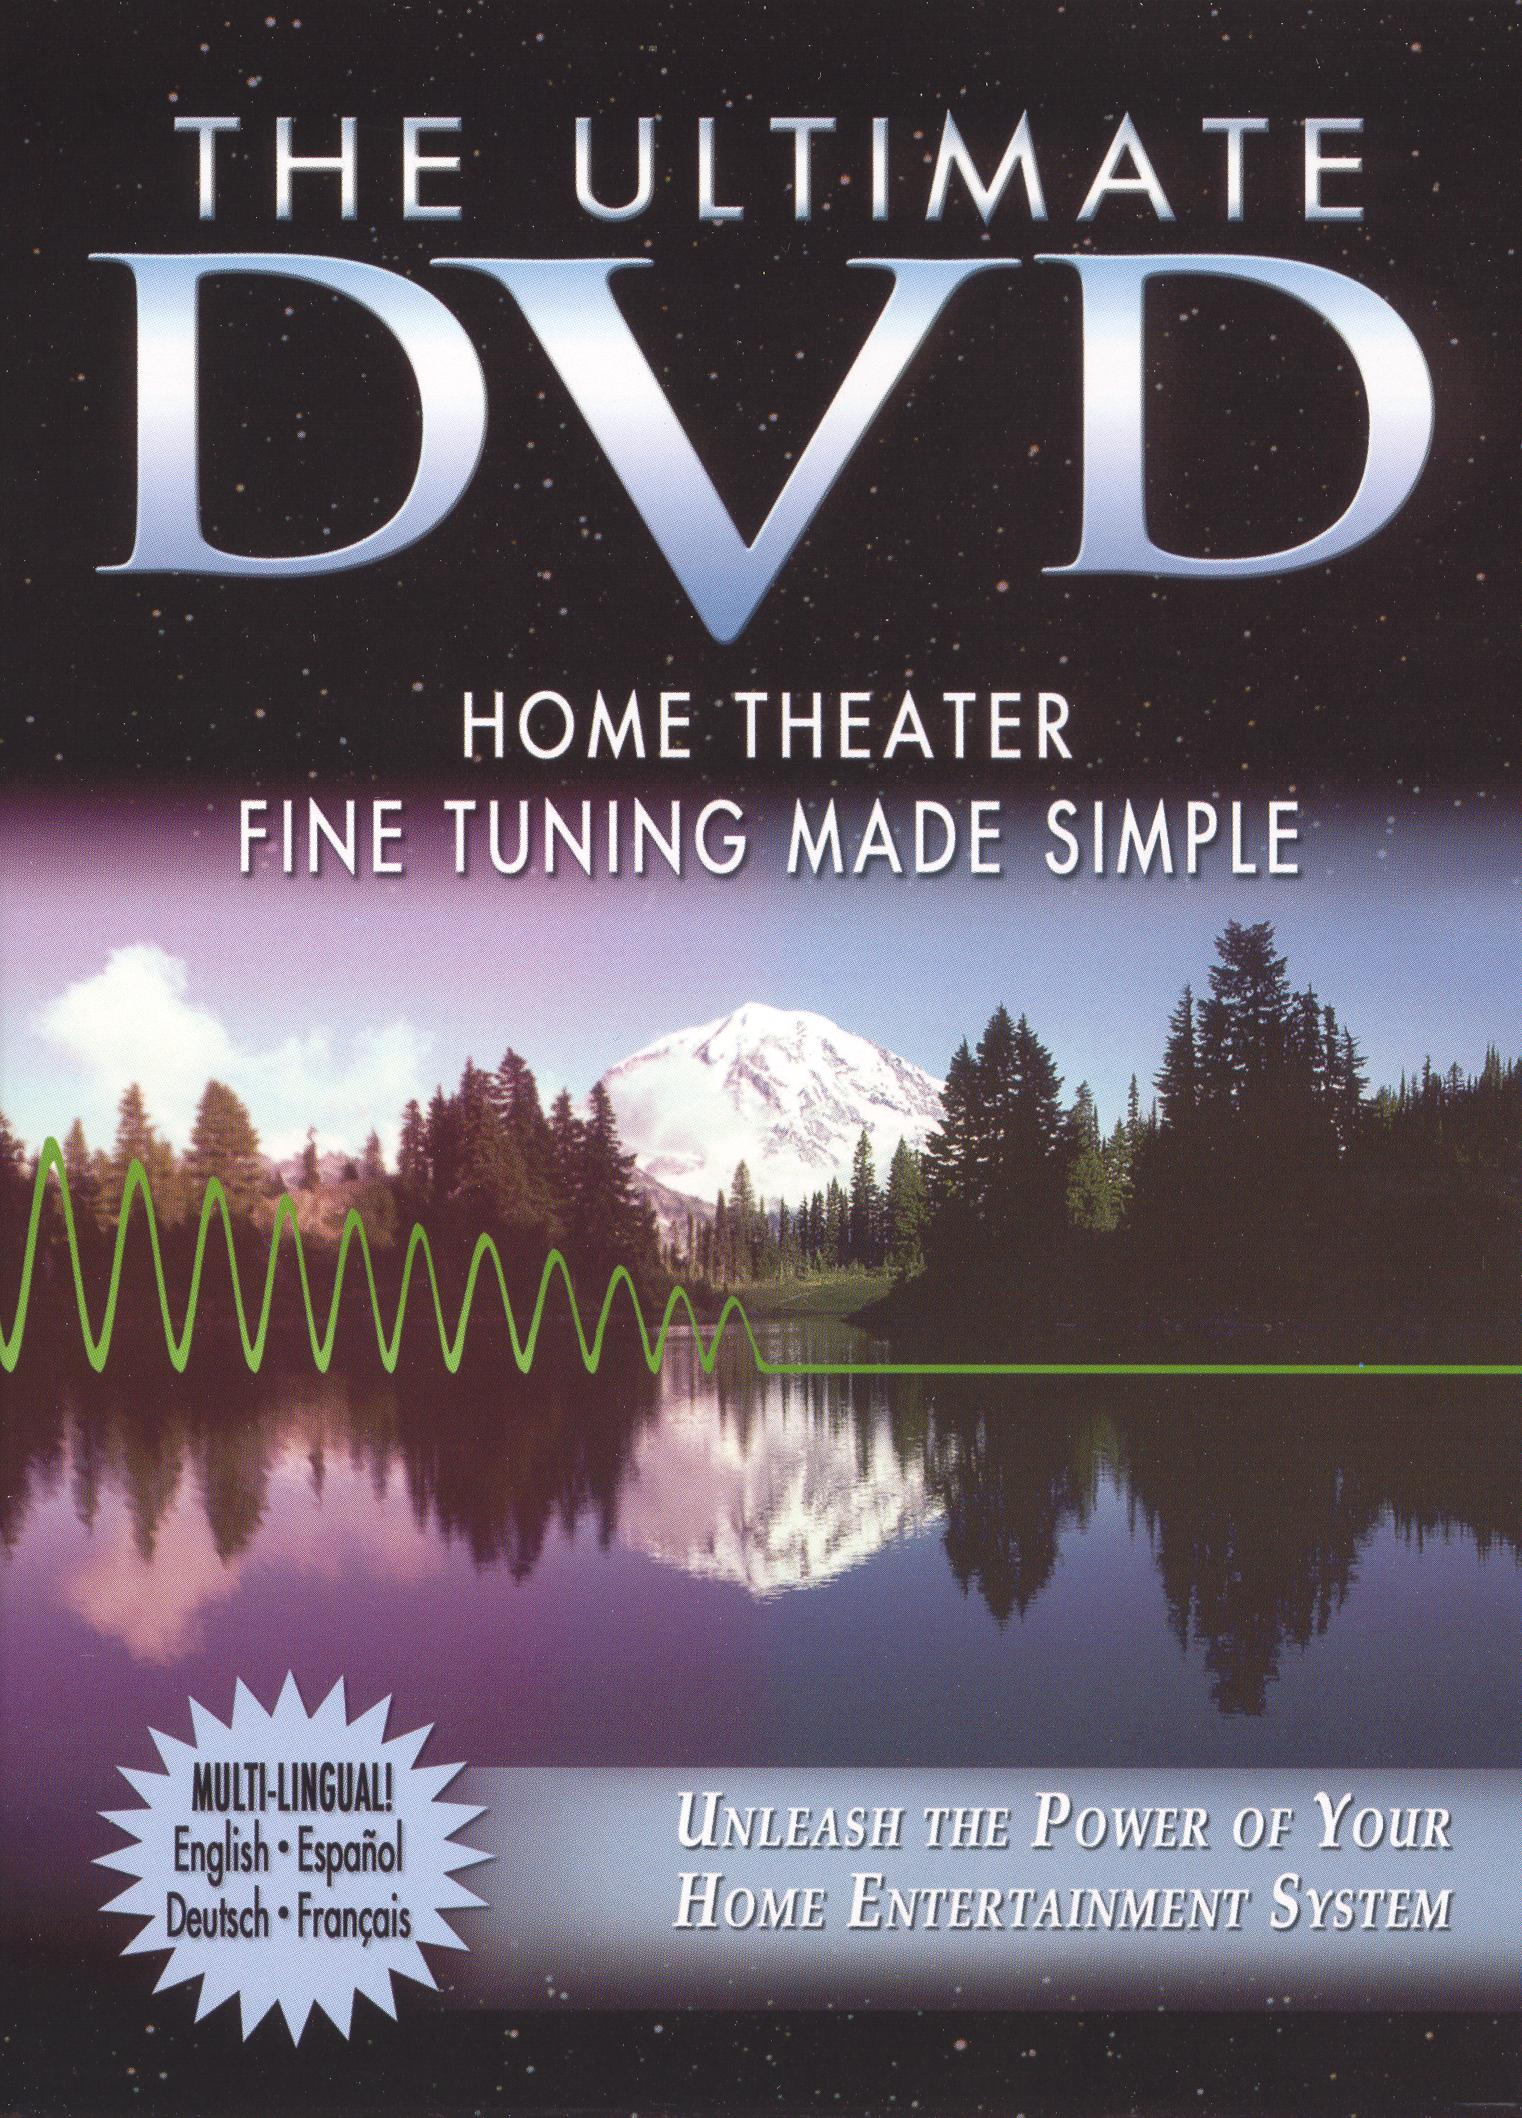 The Ultimate DVD: Home Theater Fine Tuning Made Simple (2005)